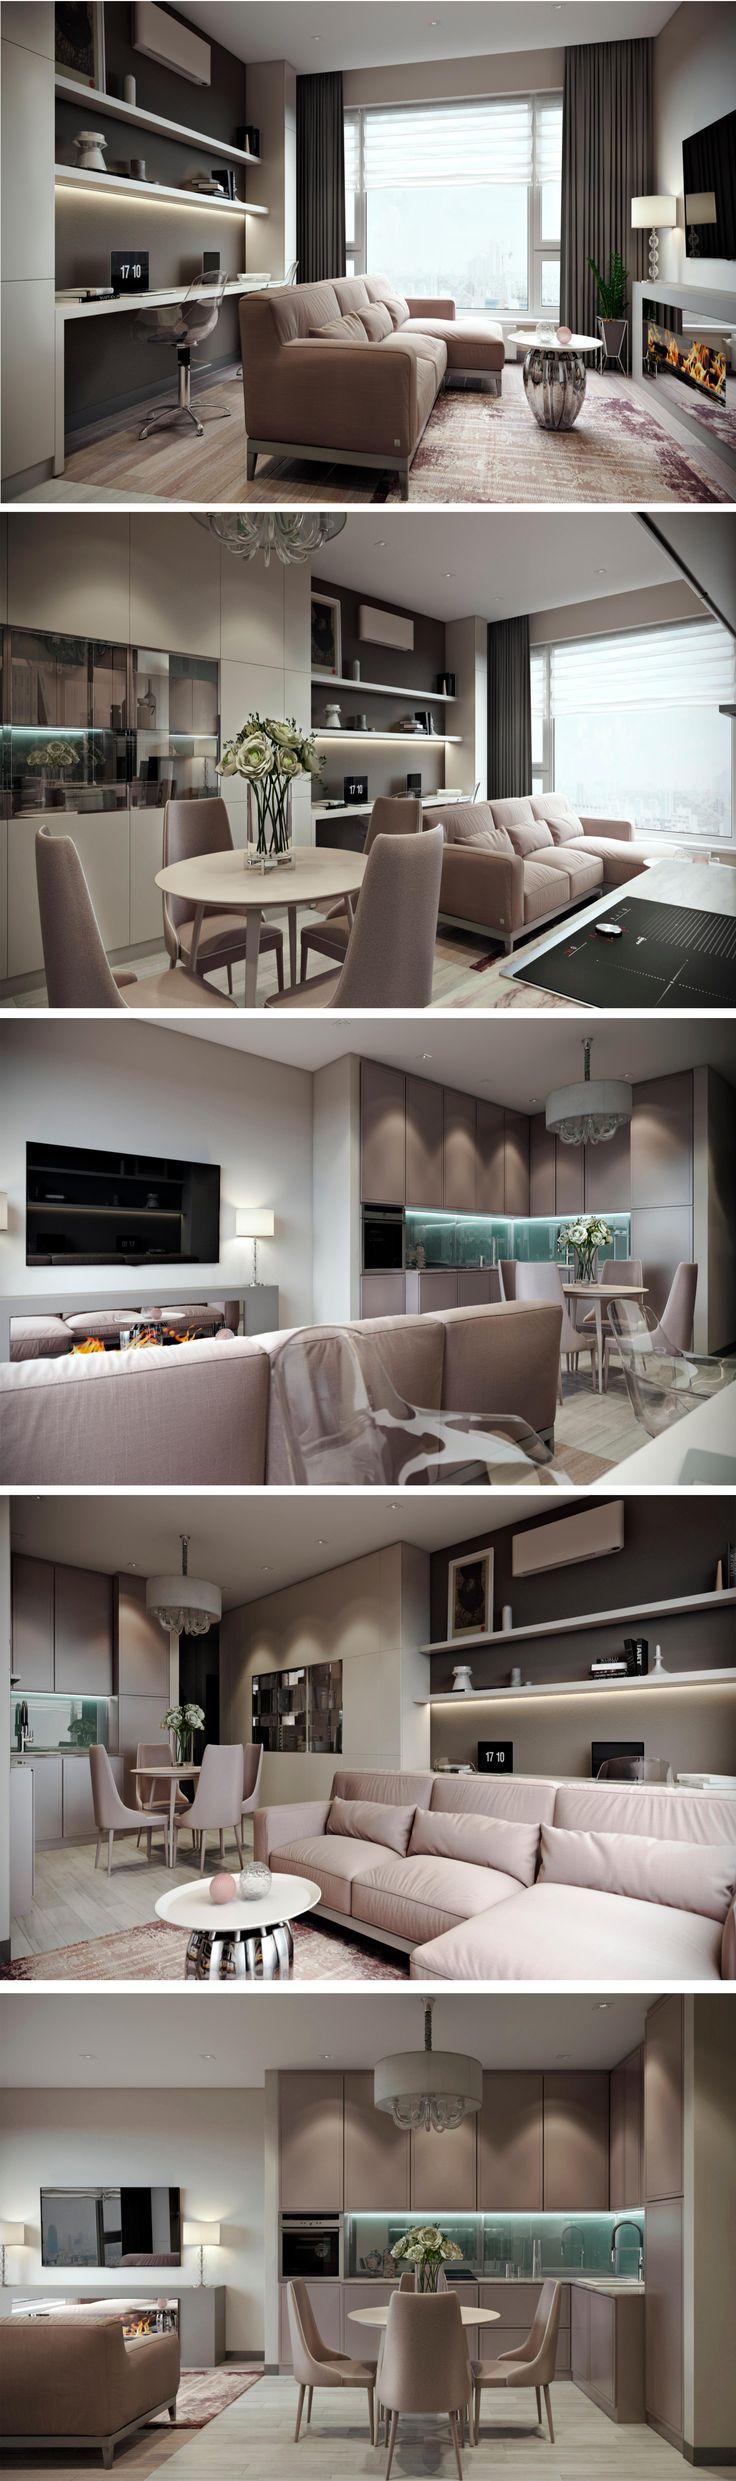 Modern American Style Living Room And Kitchen By Olga Osadchaya Interior Design Course Student In European School Kiev Ukraine